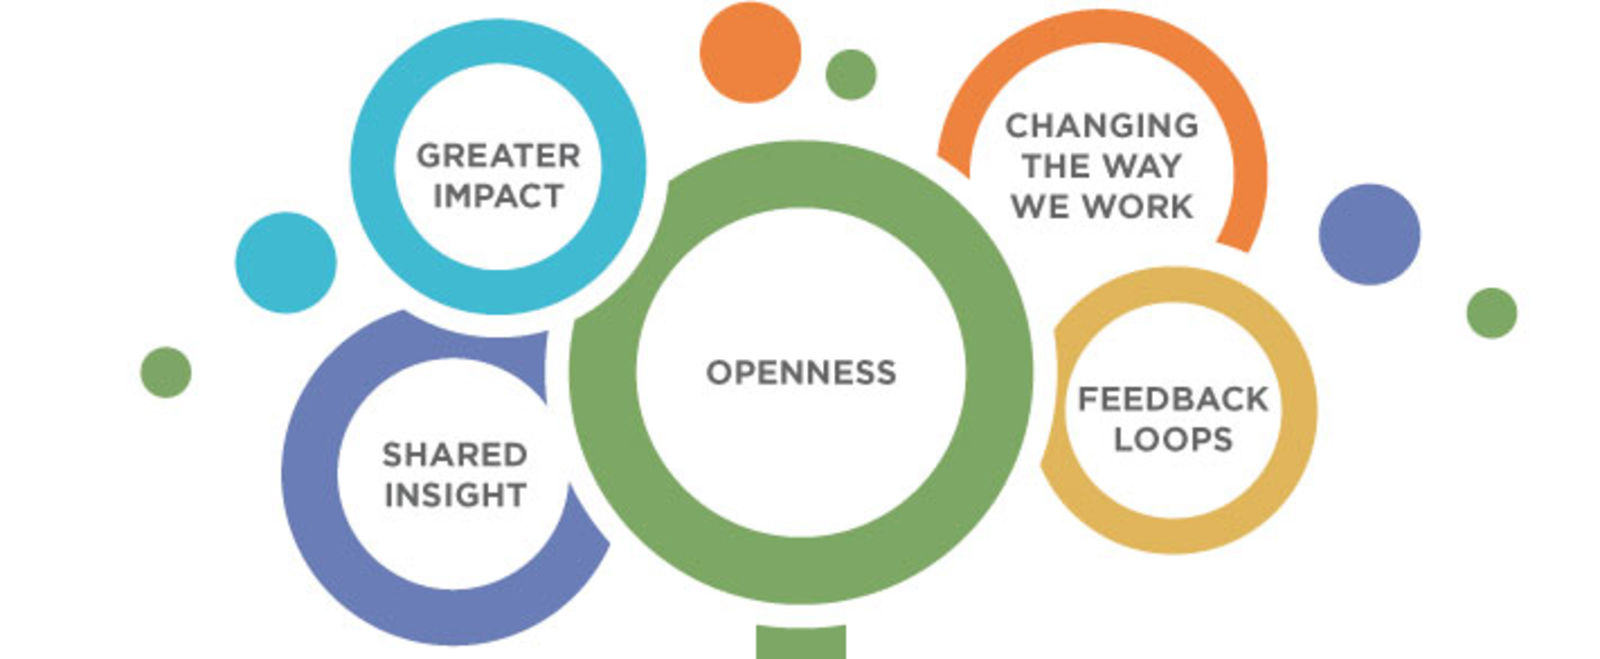 Shared Insight Theory of Change